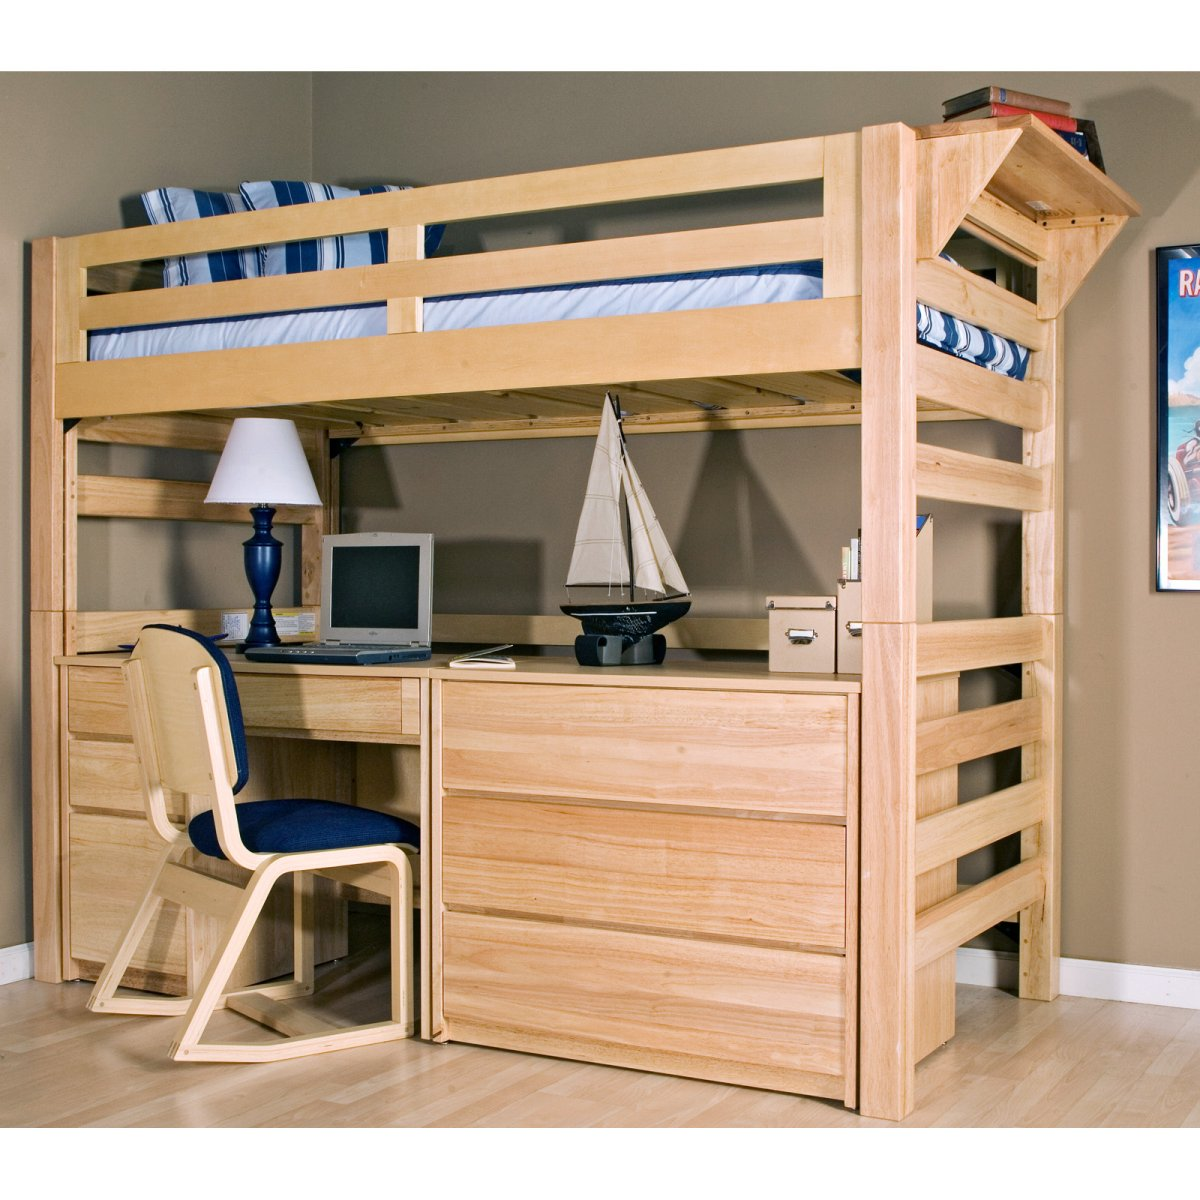 Loft bed with desk designs features inoutinterior for How to make a loft room